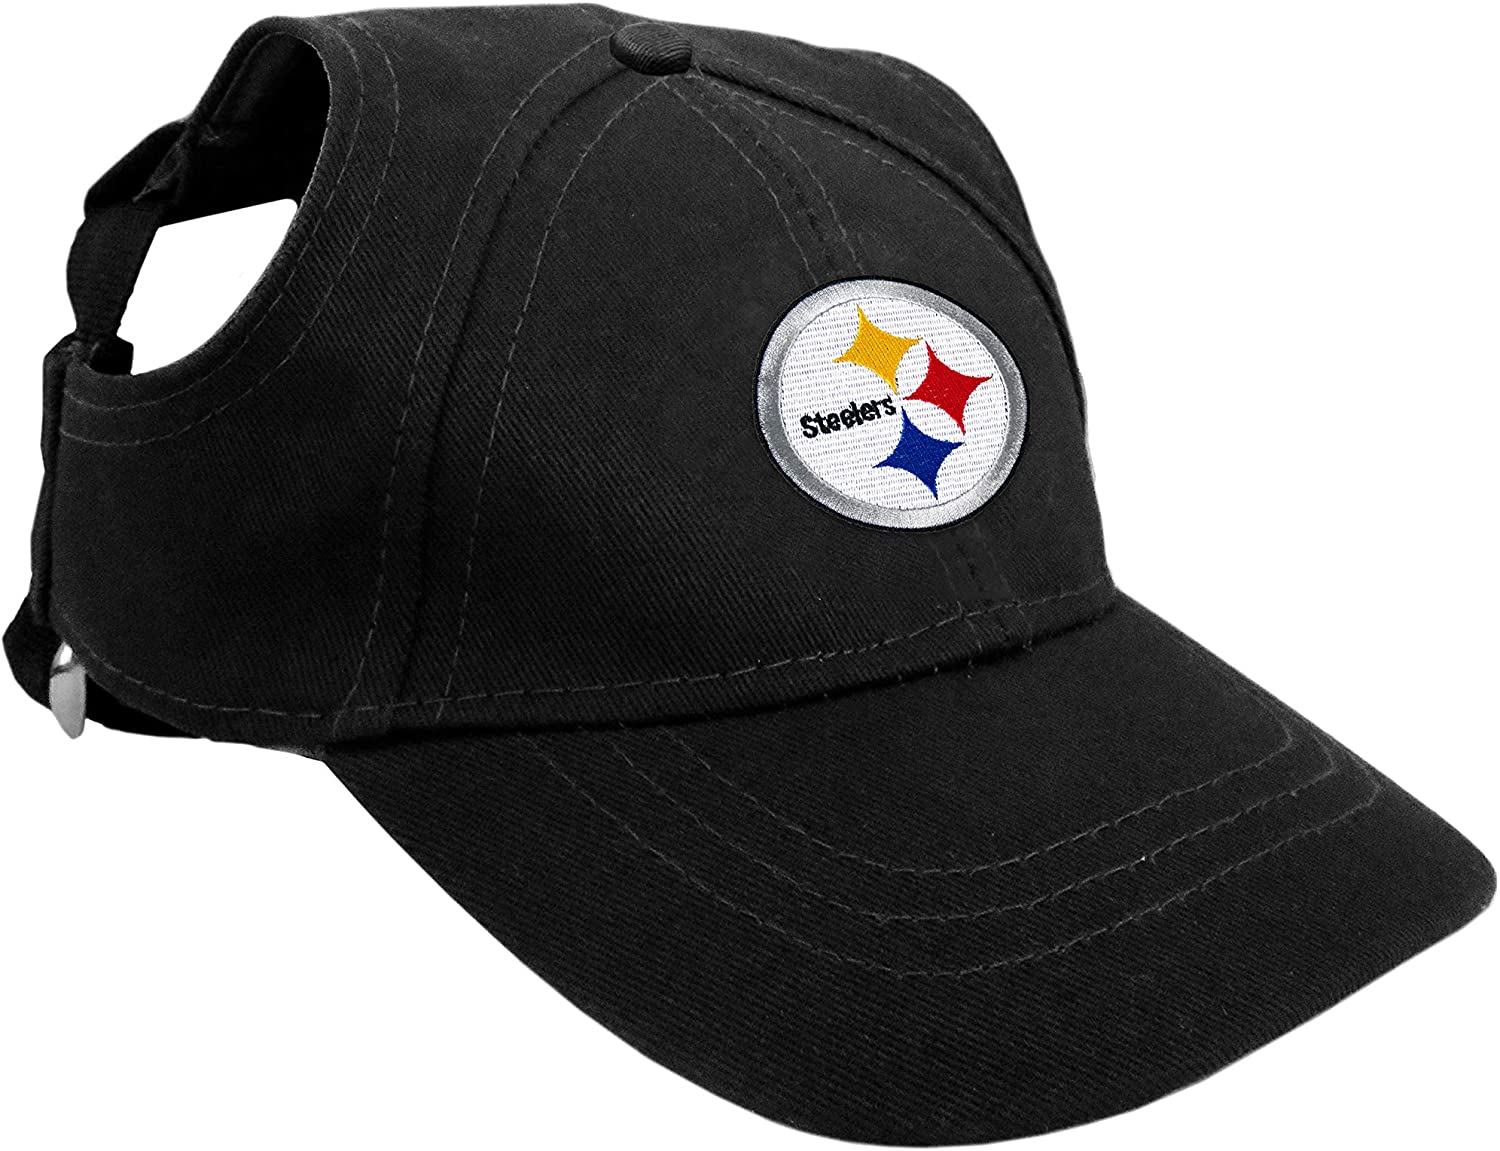 Littlearth NFL Unisex Pet Baseball Challenge the lowest price New Shipping Free Hat Ears for - and Holes